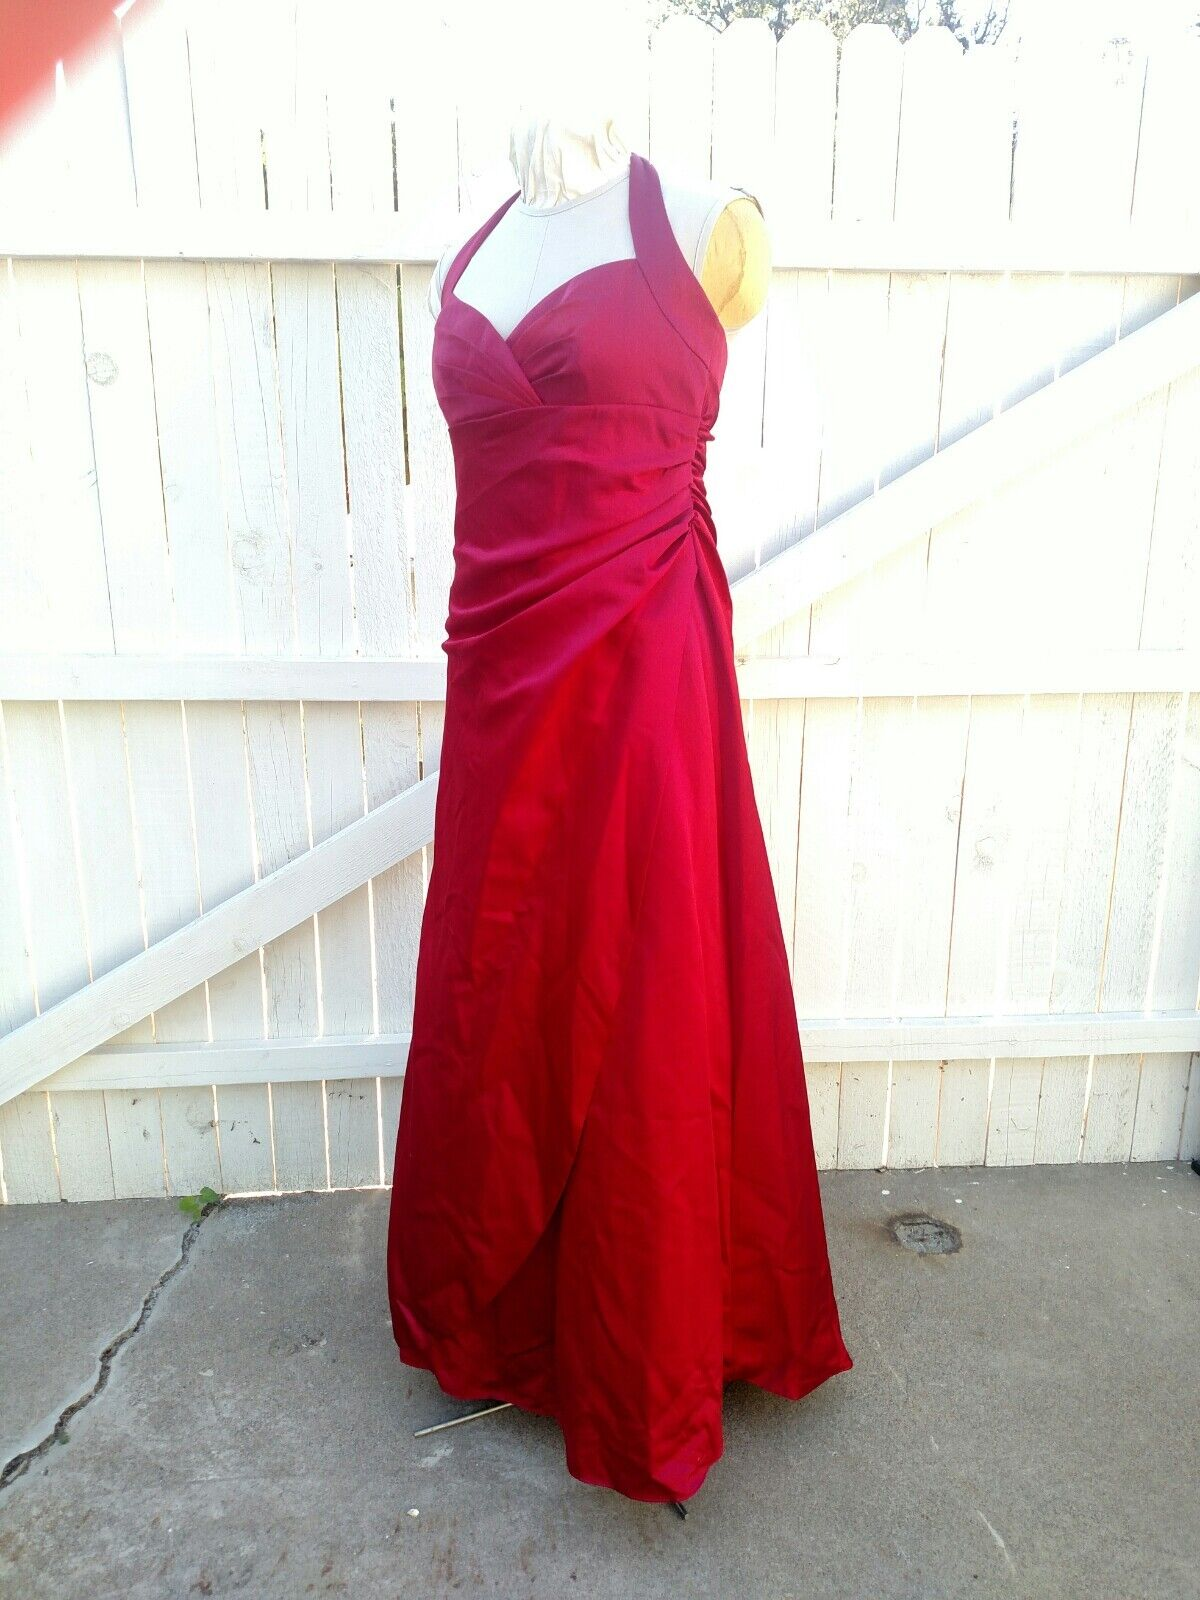 Preowned RED FORMAL GOWN FULL OUTFIT David's Bridal #81544 Size12 w/ACC/SHOES